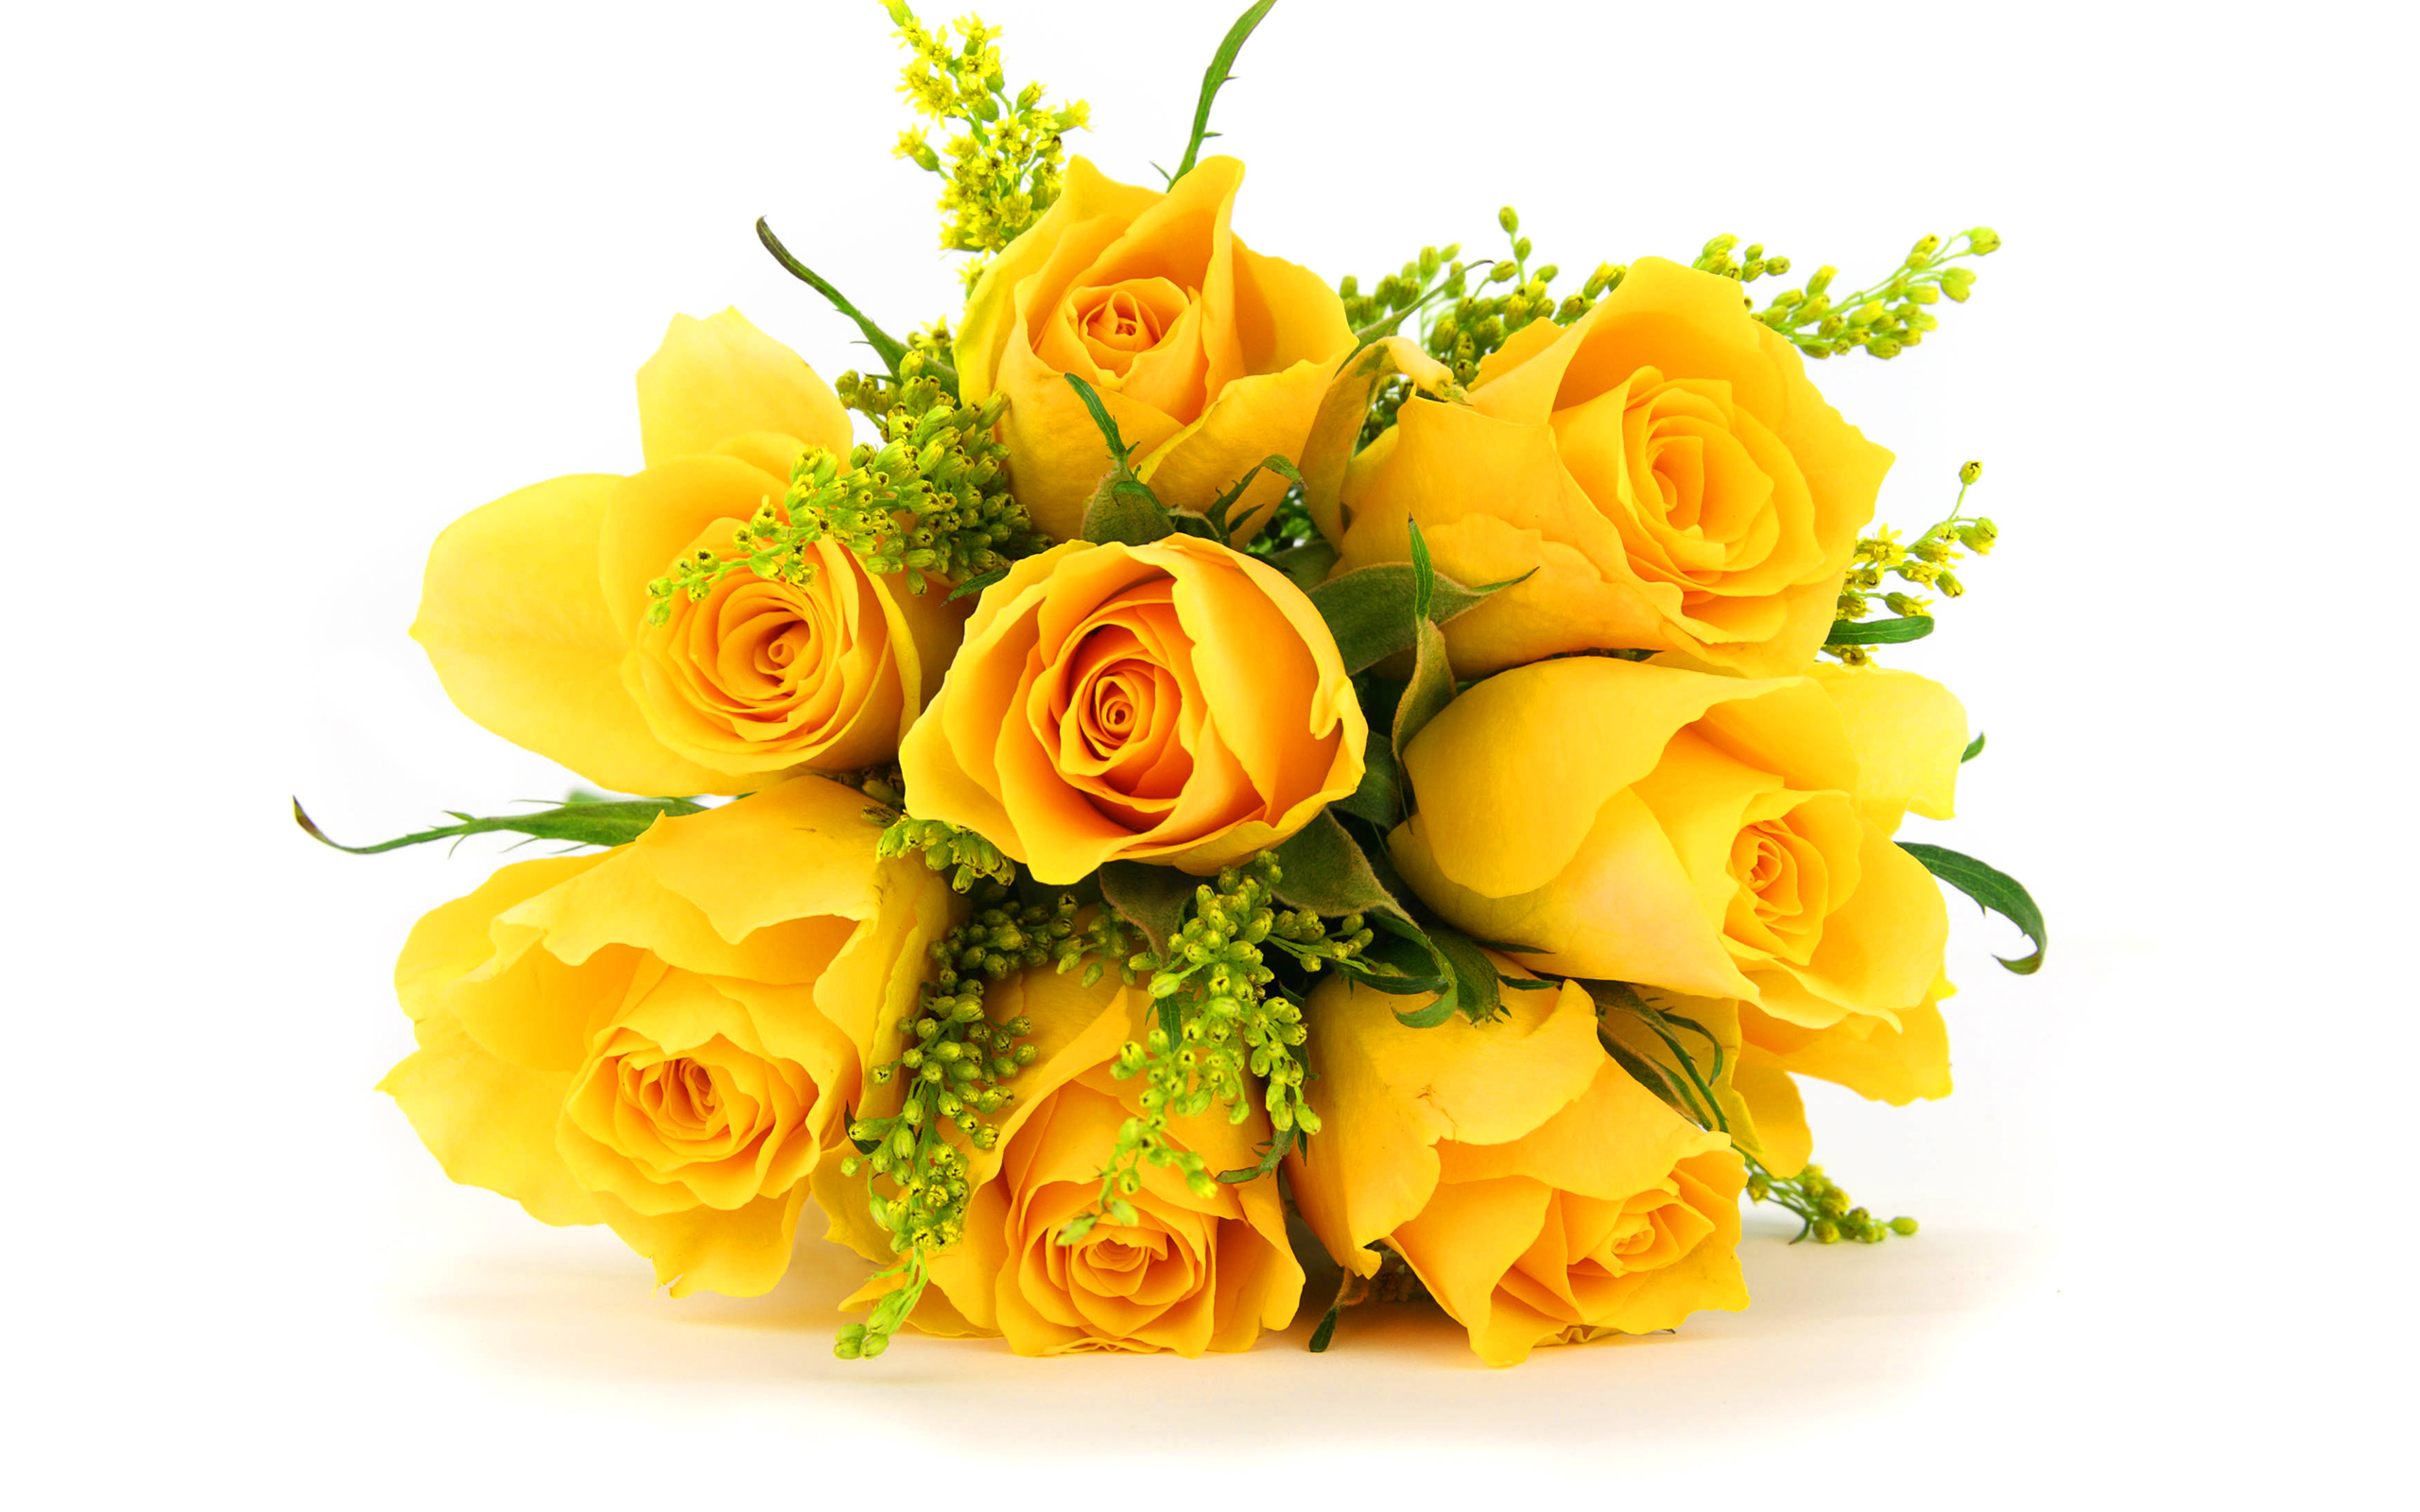 Bunch yellow roses